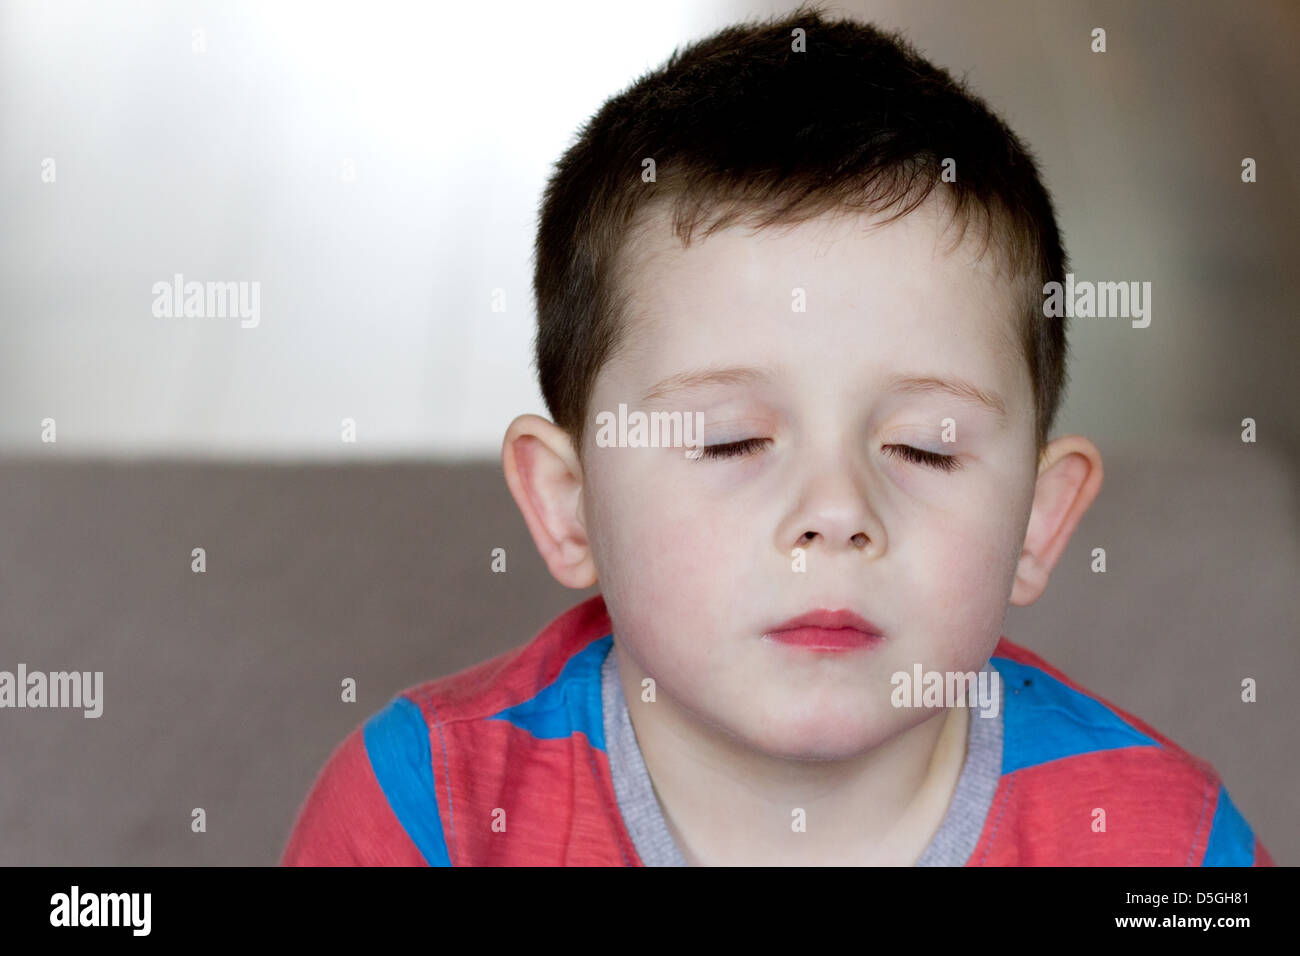 little boy with his eyes tight shut - Stock Image